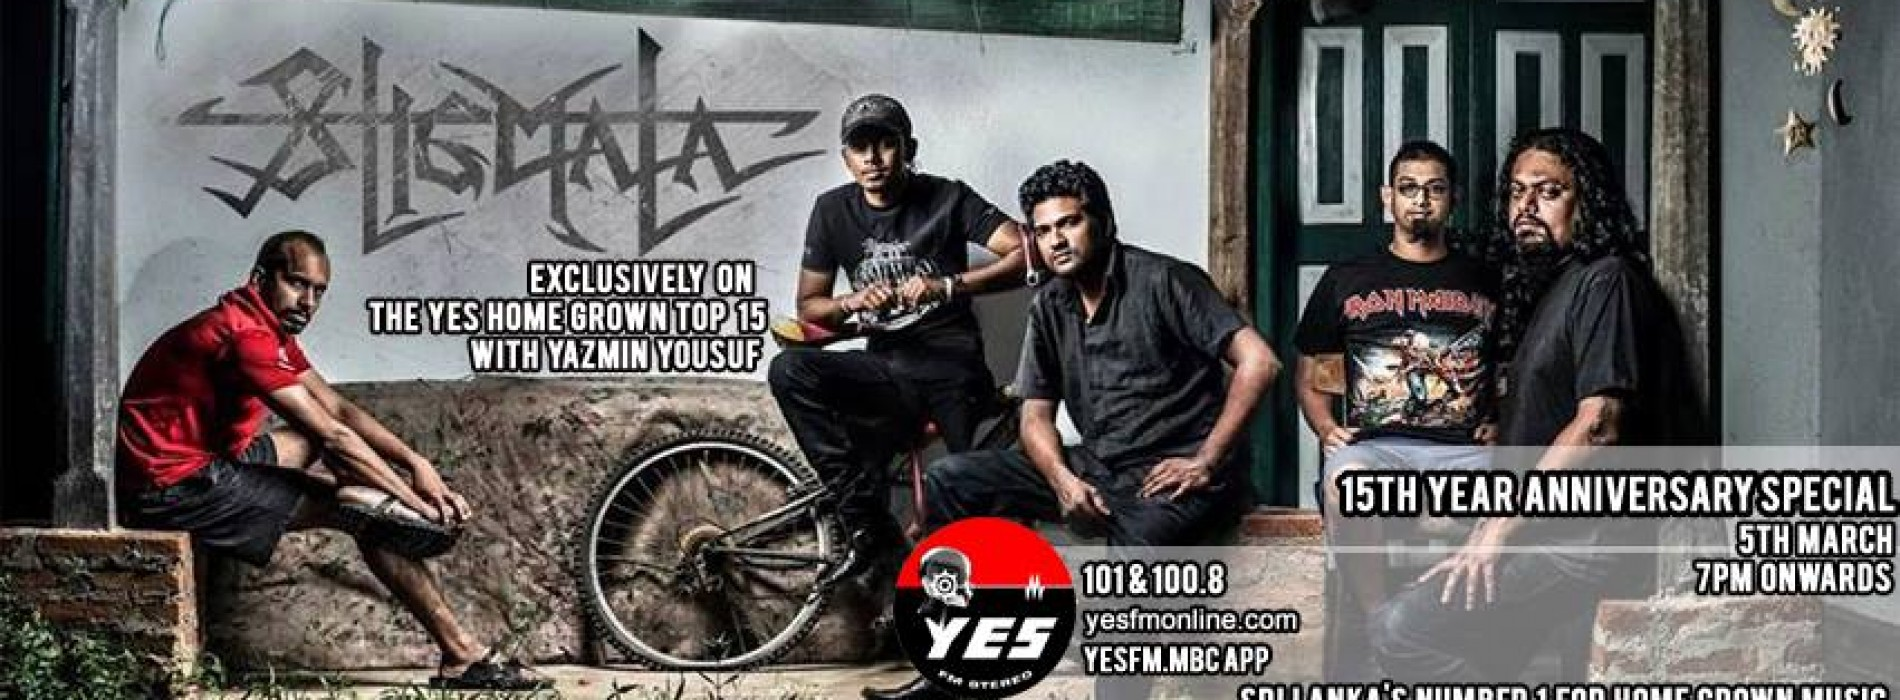 Stigmata On The YES Home Grown Top 15